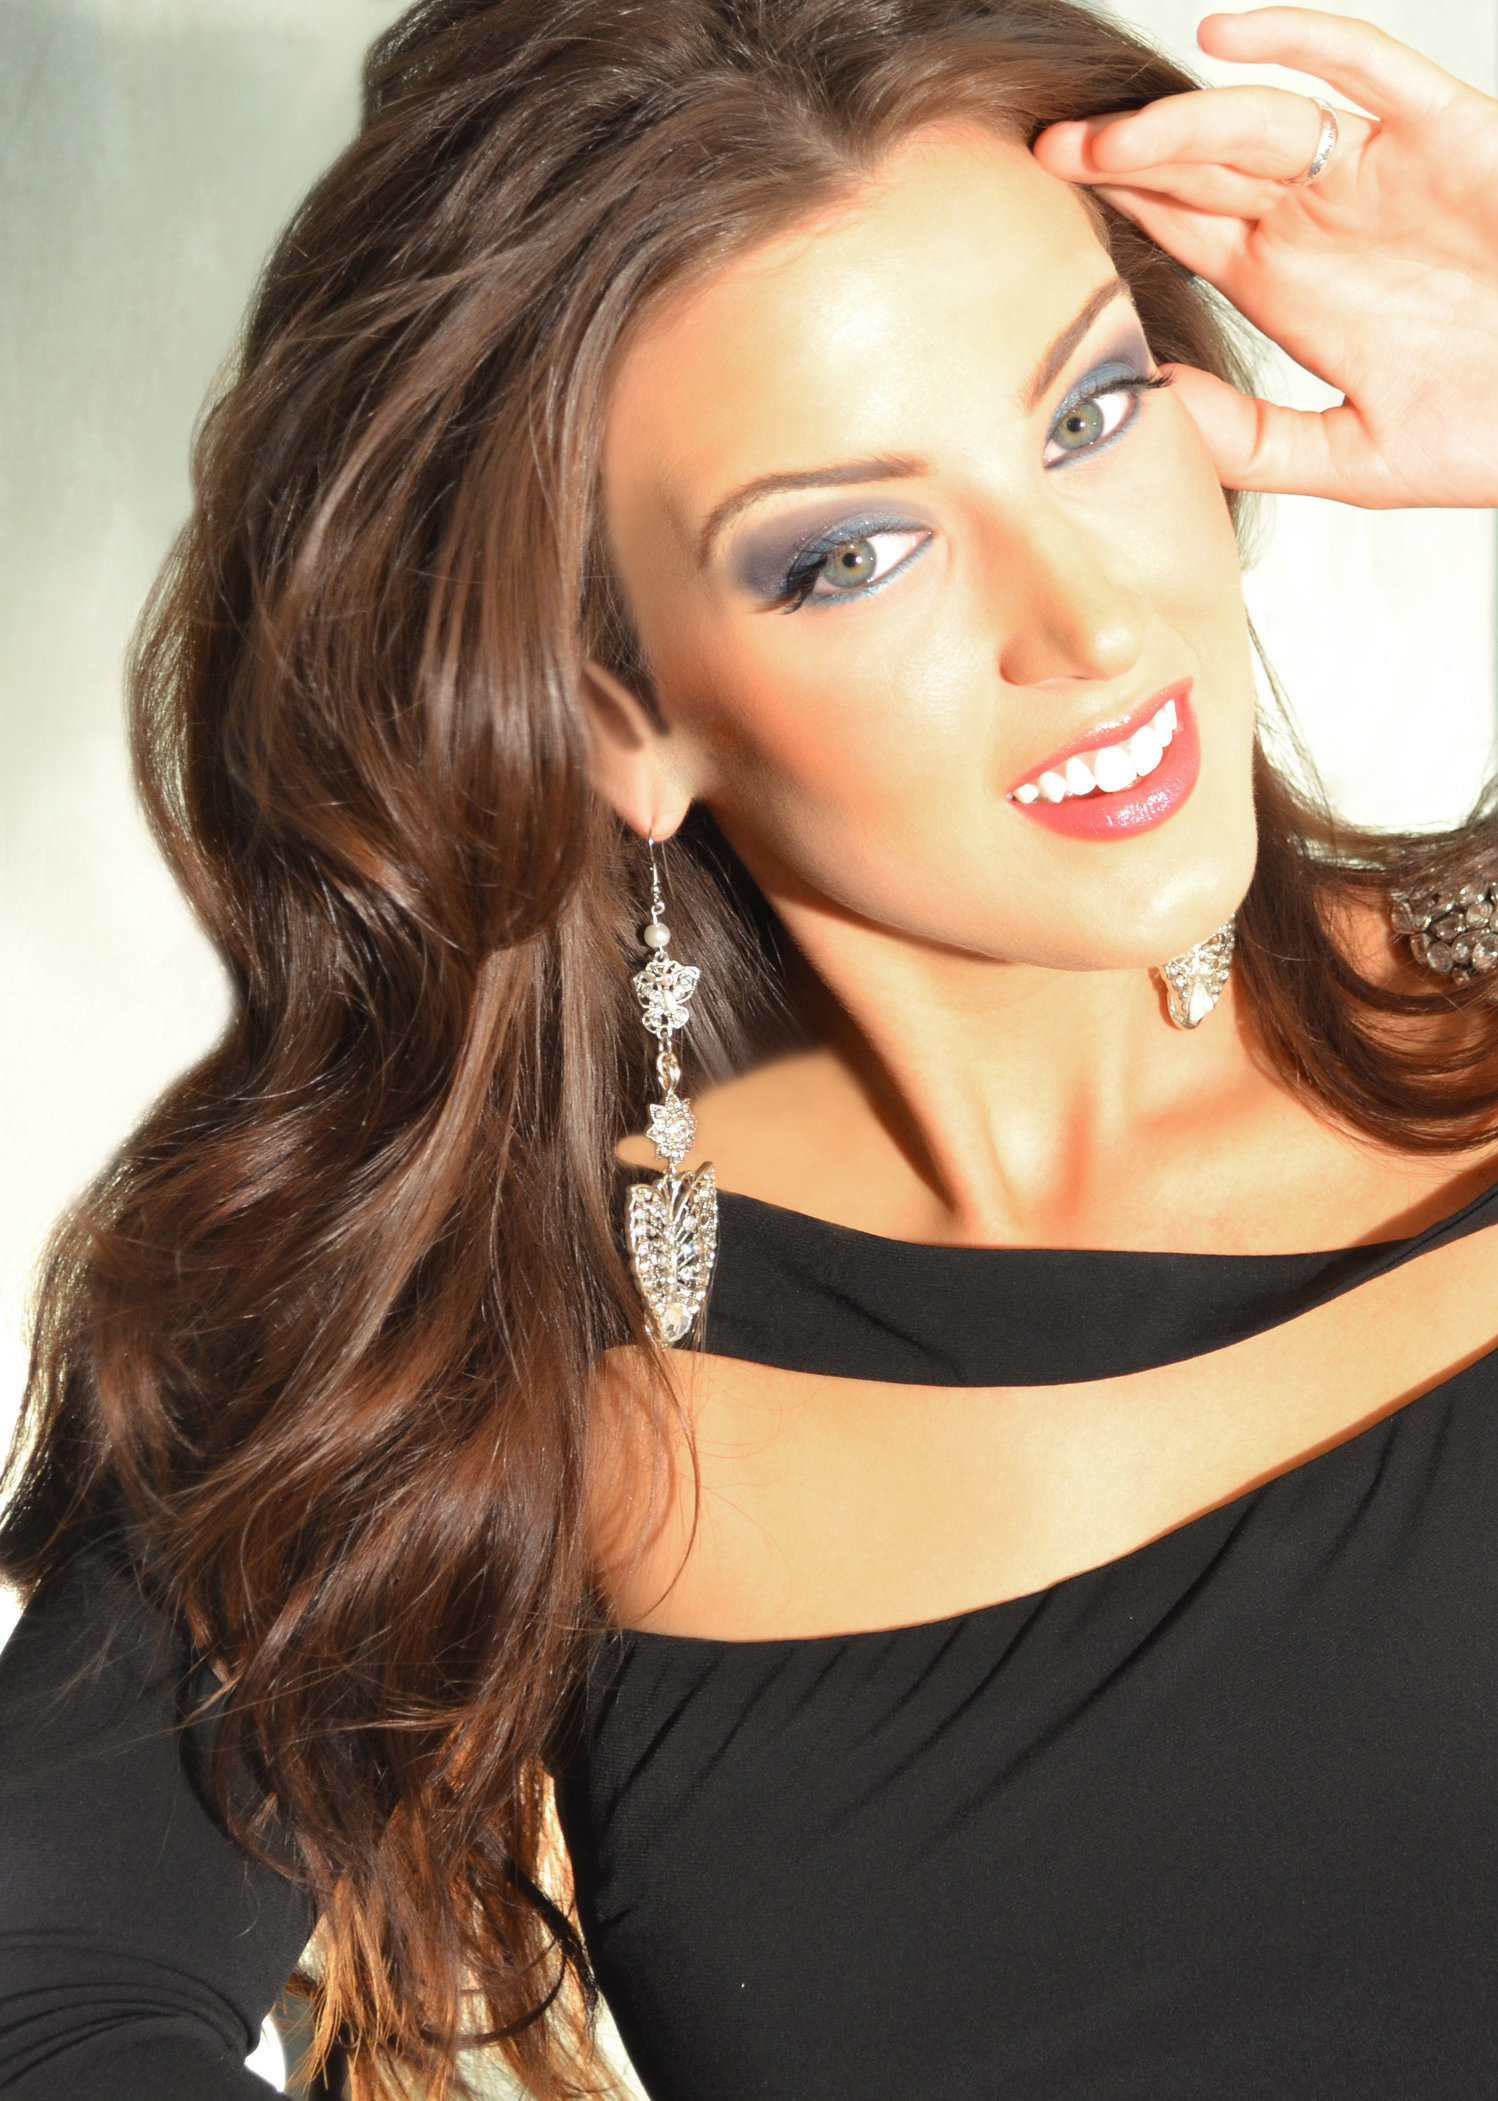 MISS NORTH COAST is wearing 3 layer butterfly silver drops with clear rhinestones.